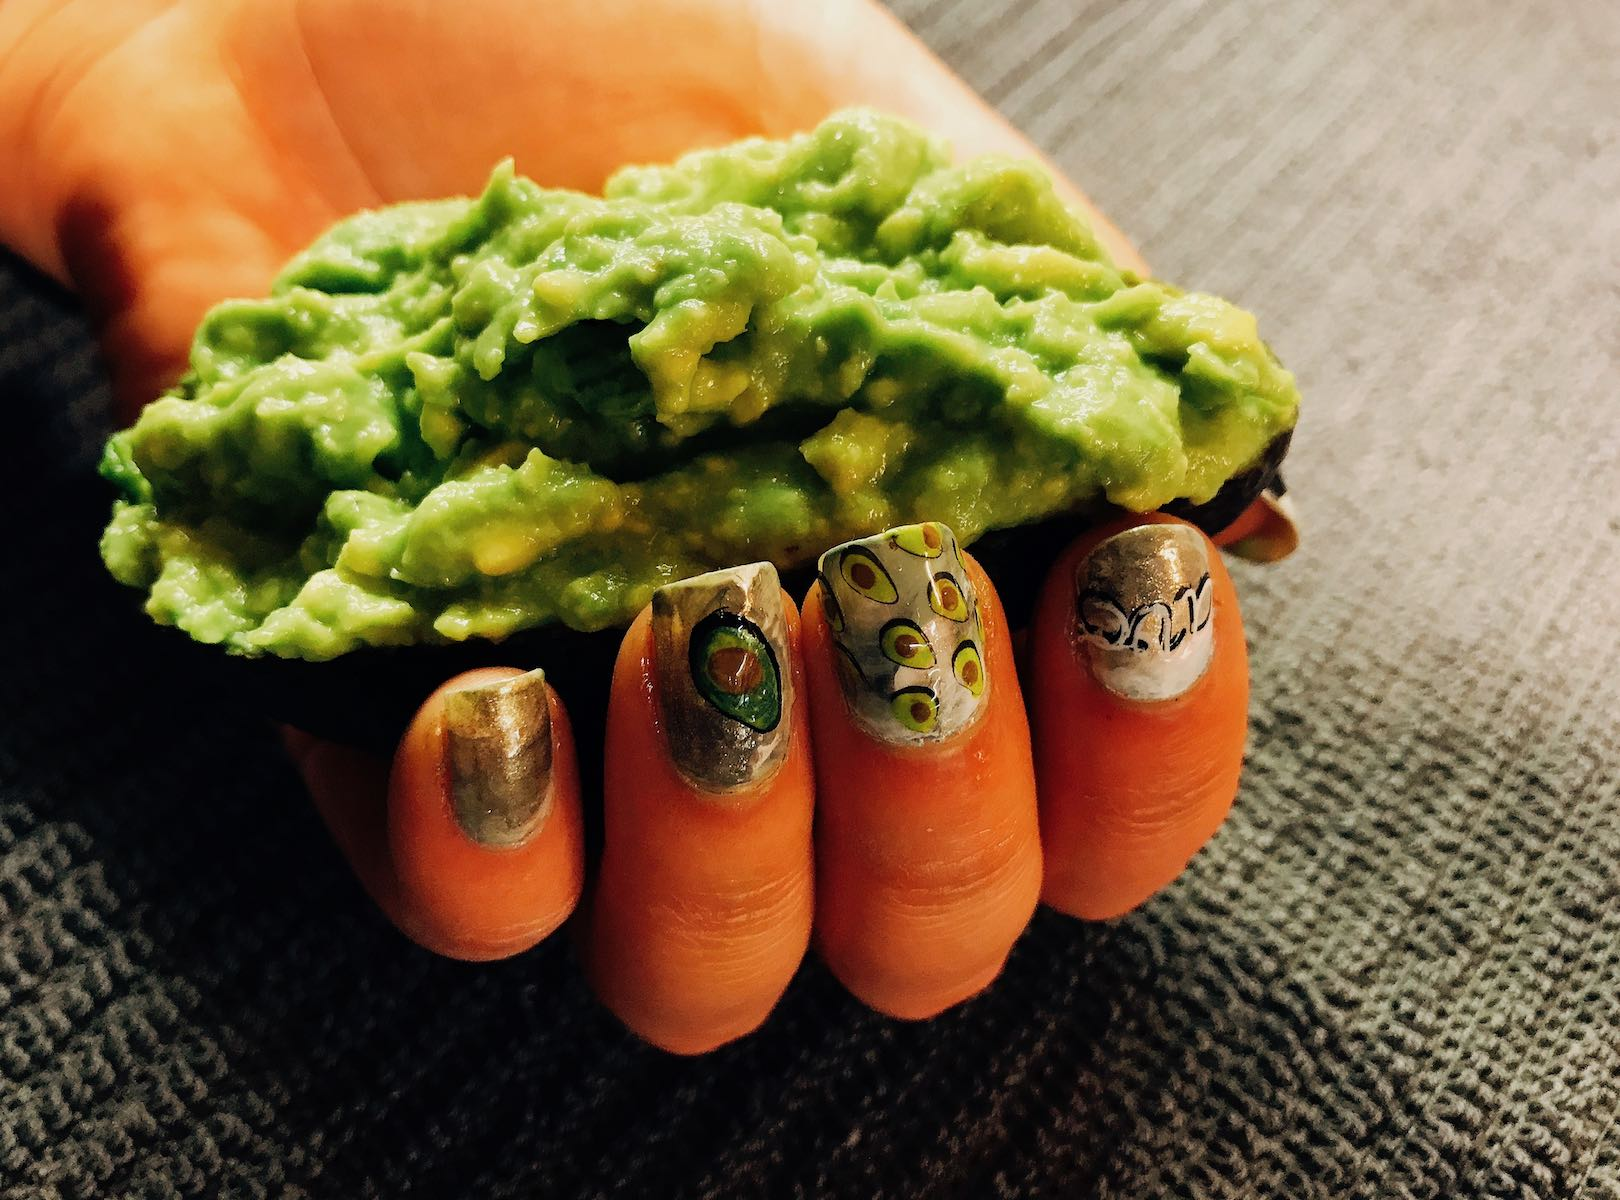 Mashed avocado with Nail art